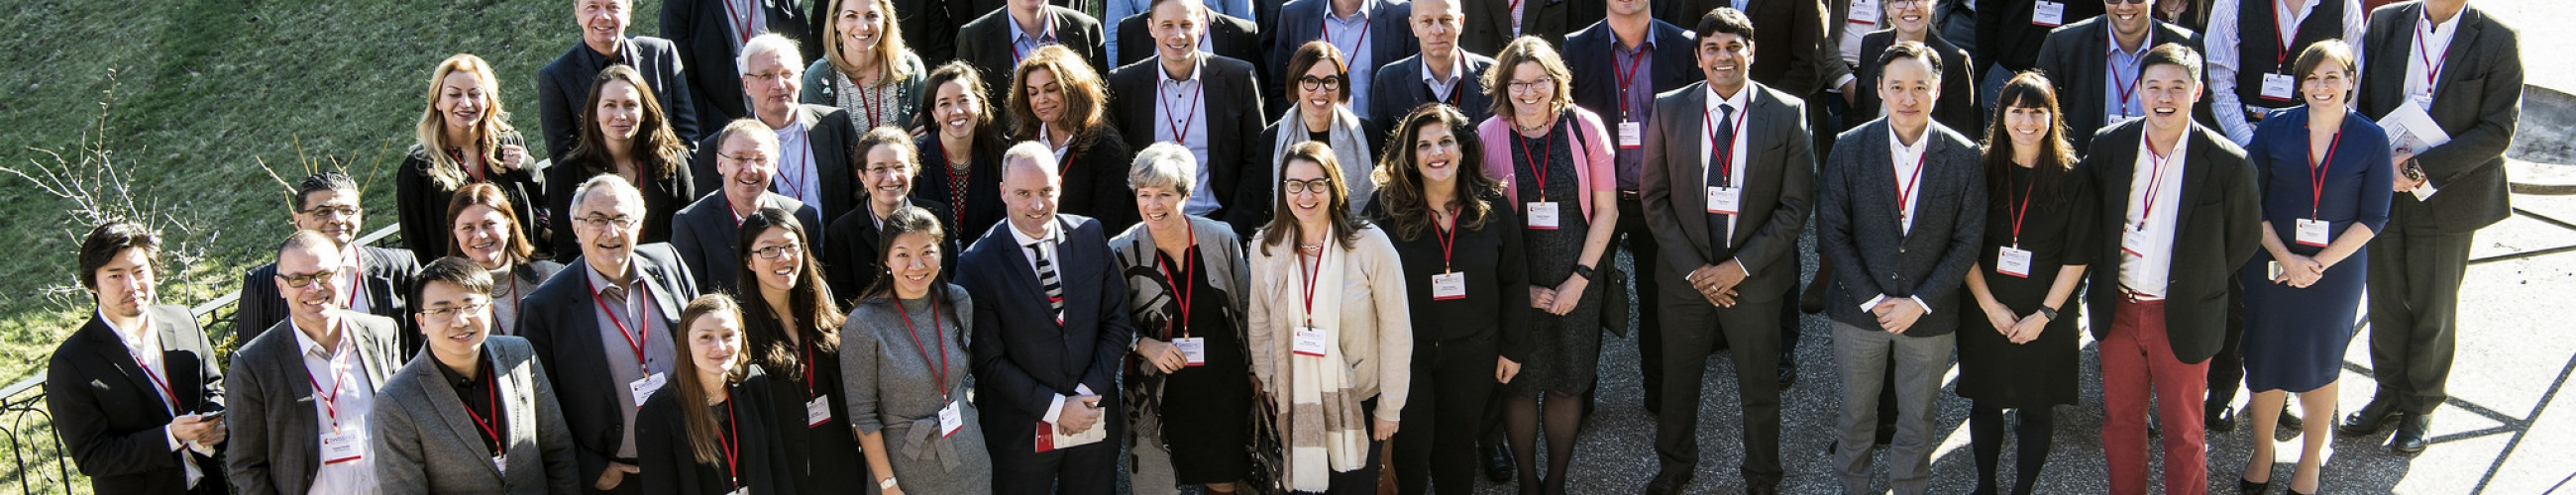 Swiss HLG winter conference 2018